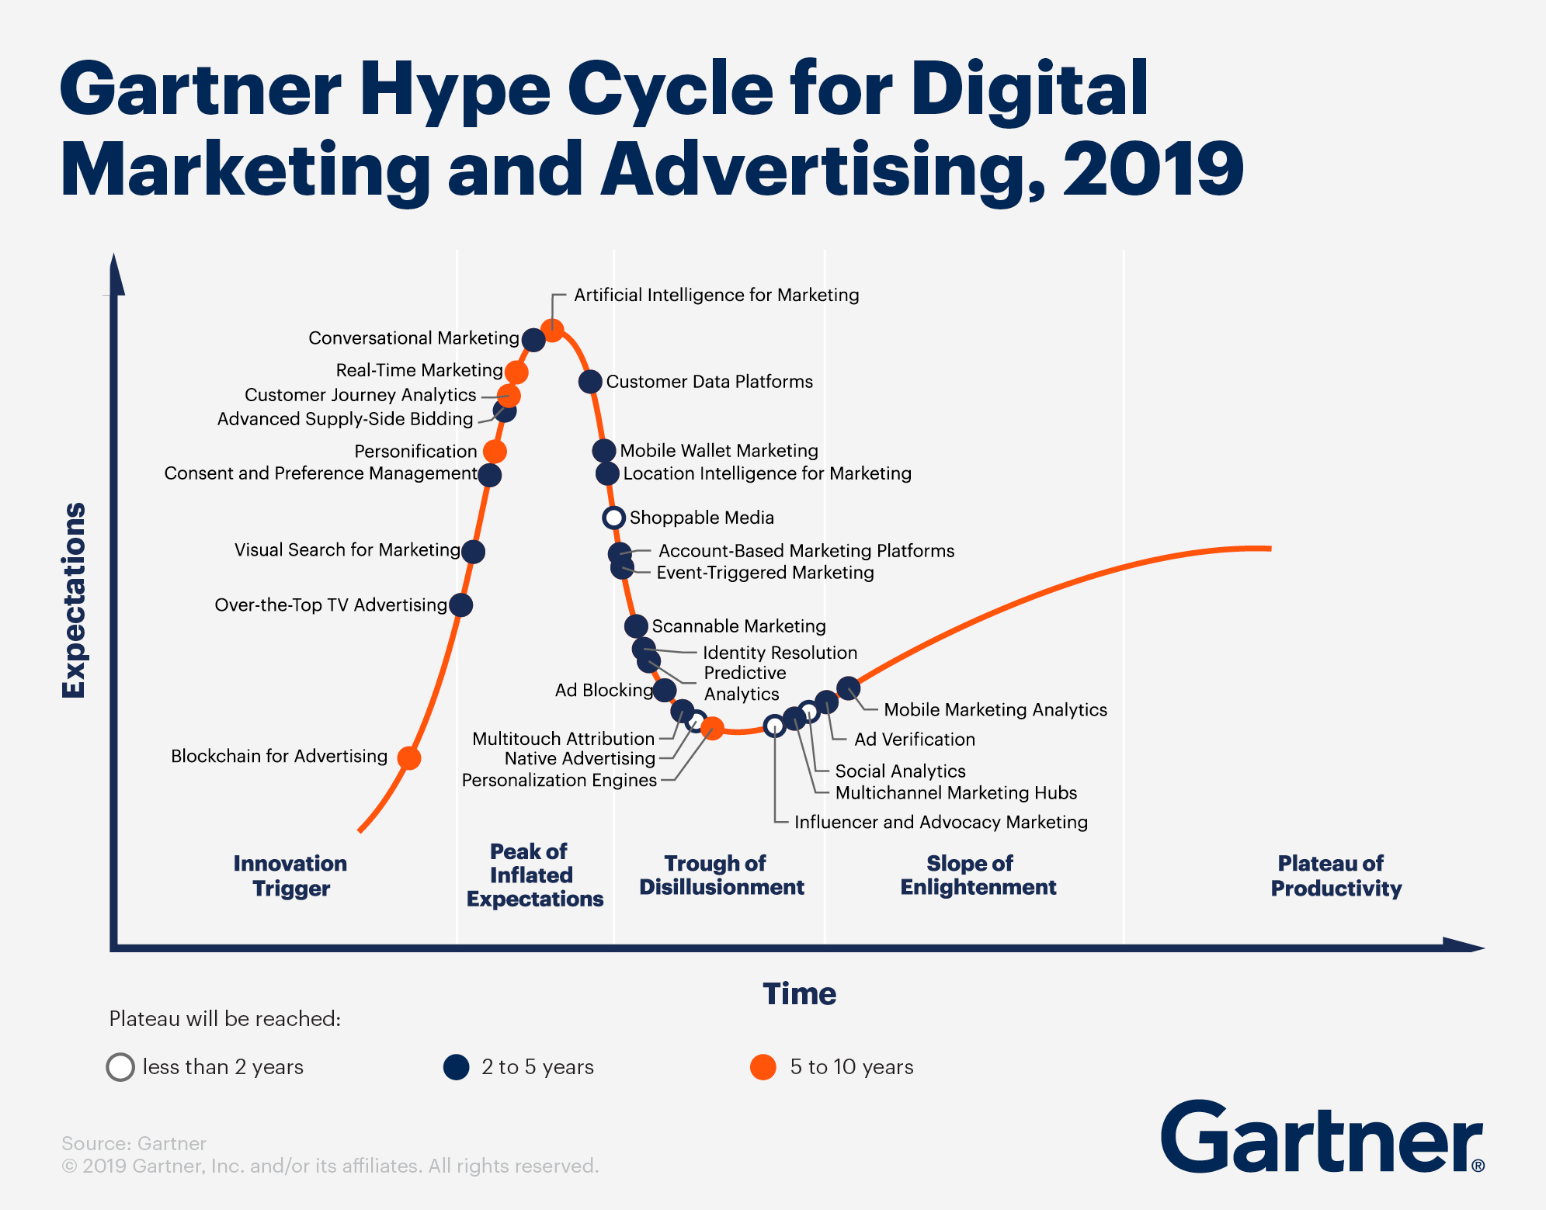 Latest Gartner digital marketing and advertising hypecycle